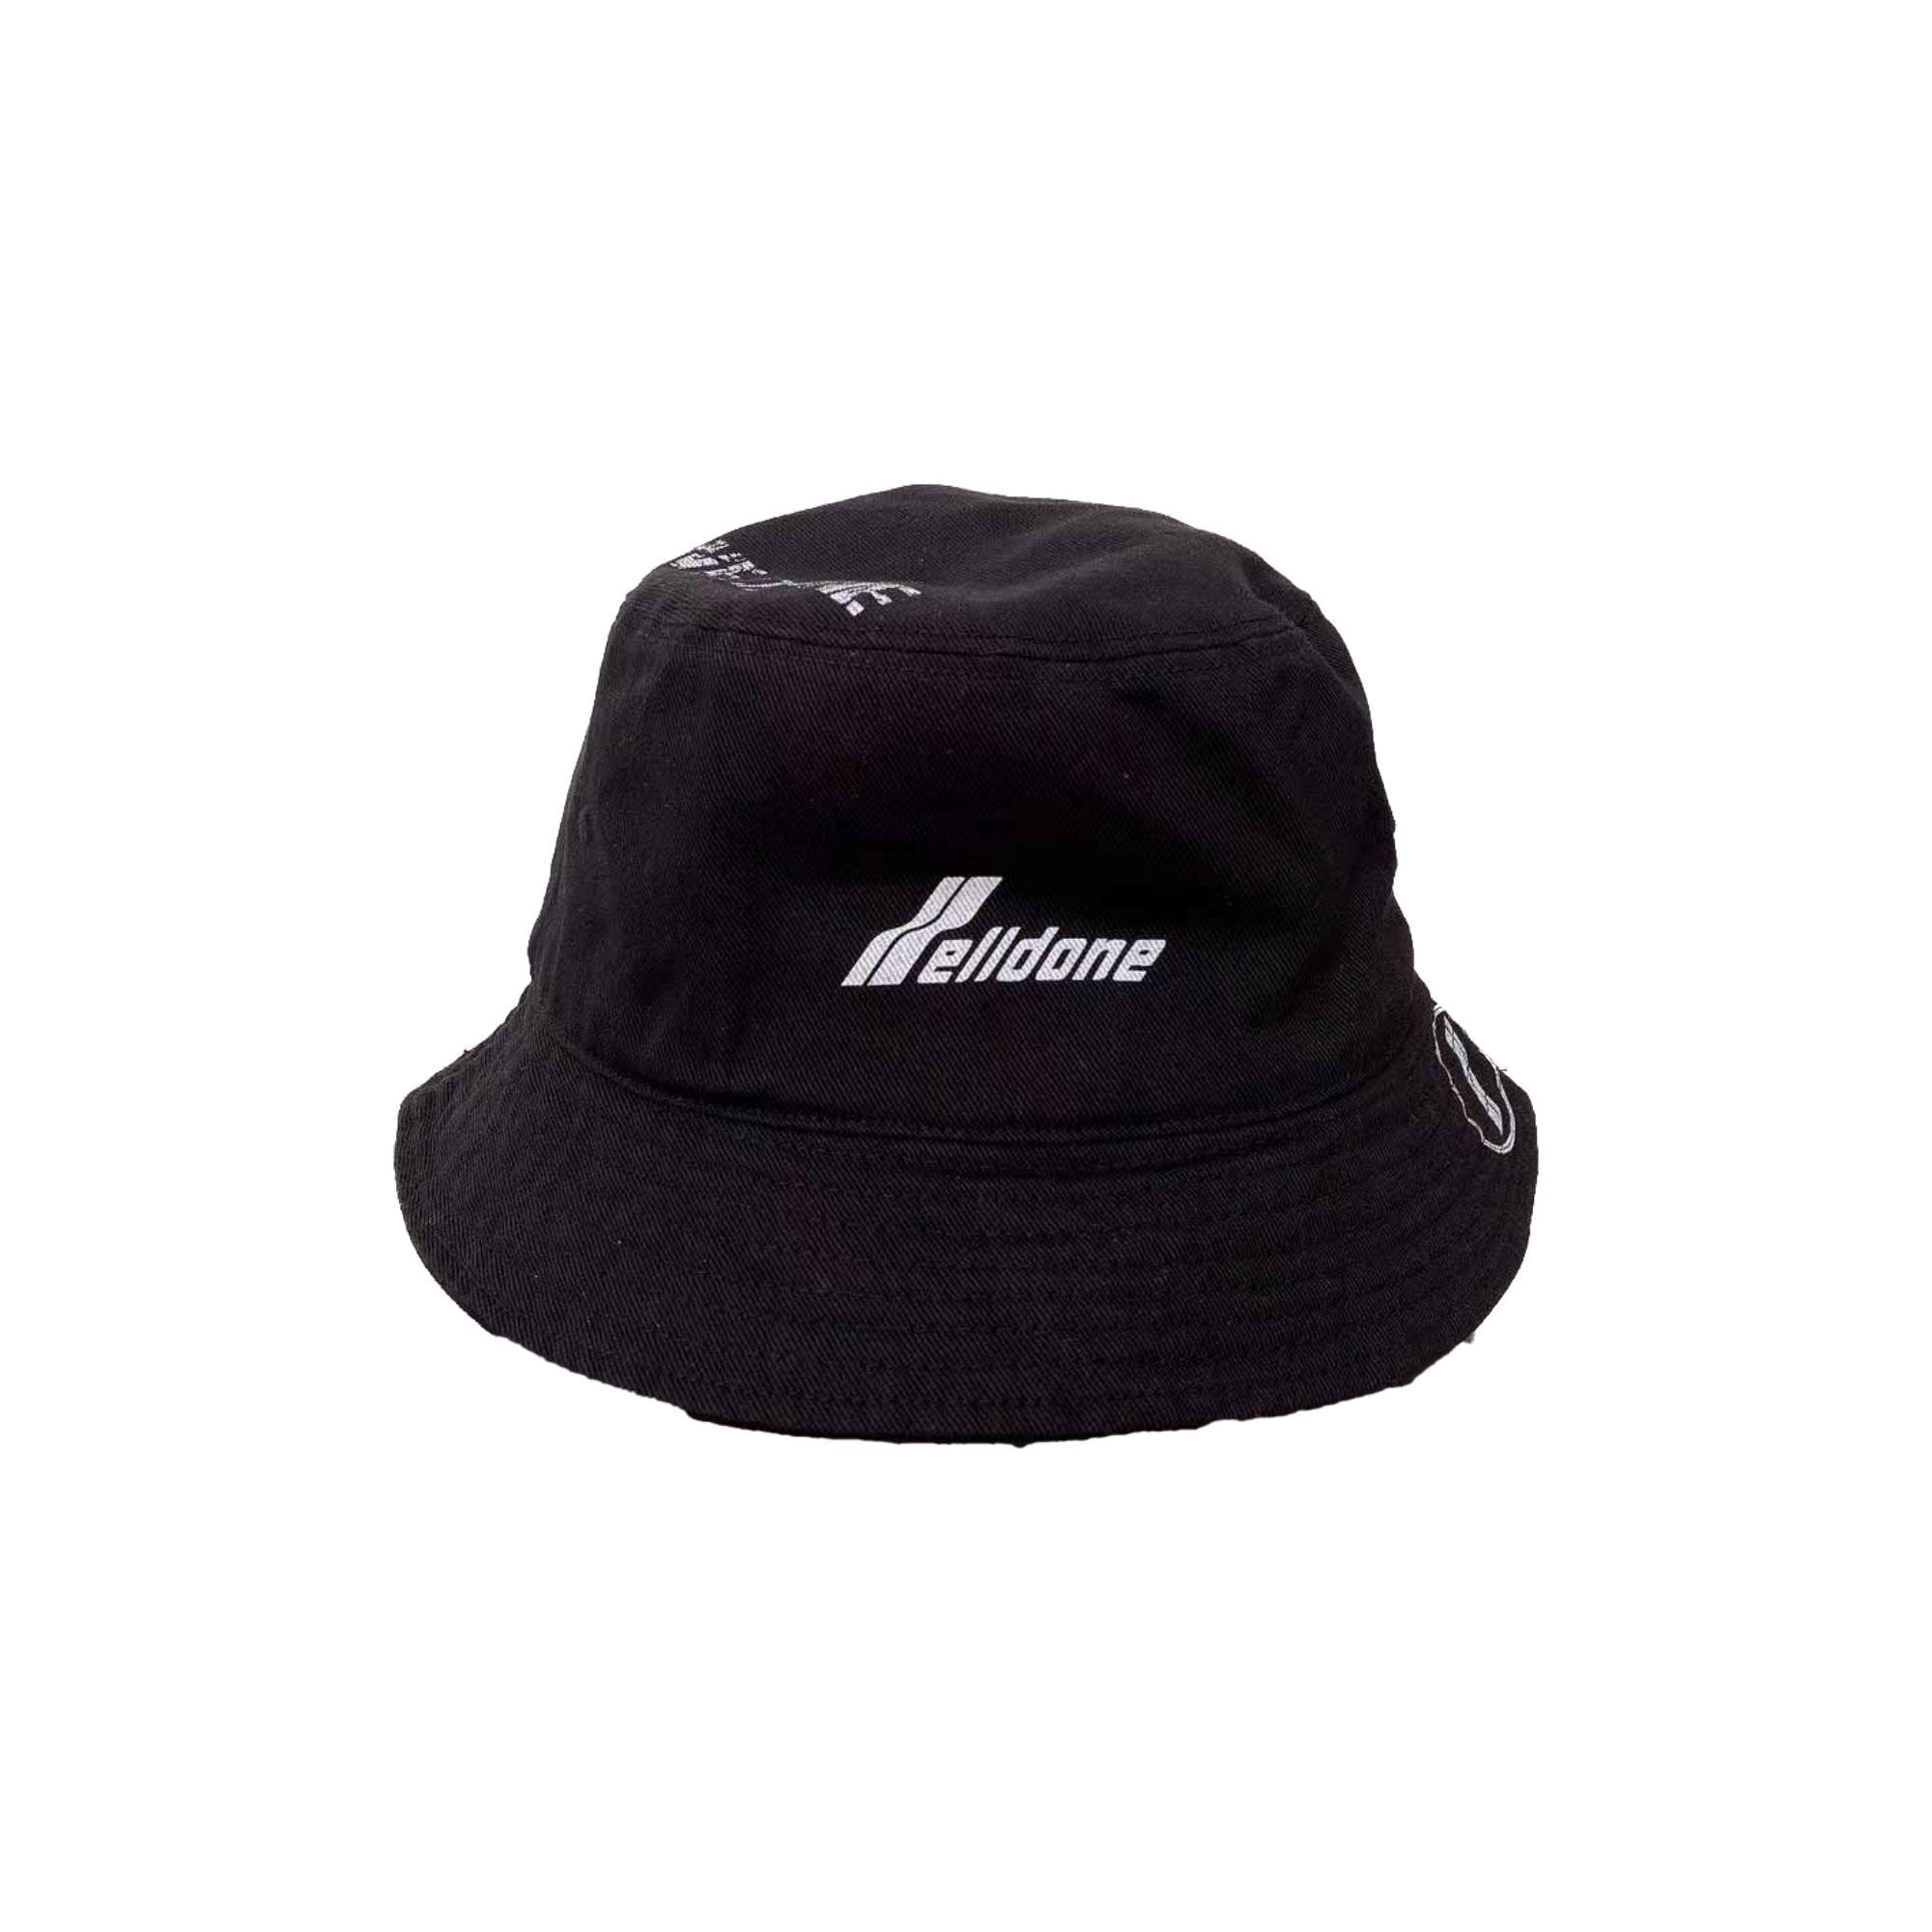 WE11DONE Black Logo Bucket Hat | MADA IN CHINA